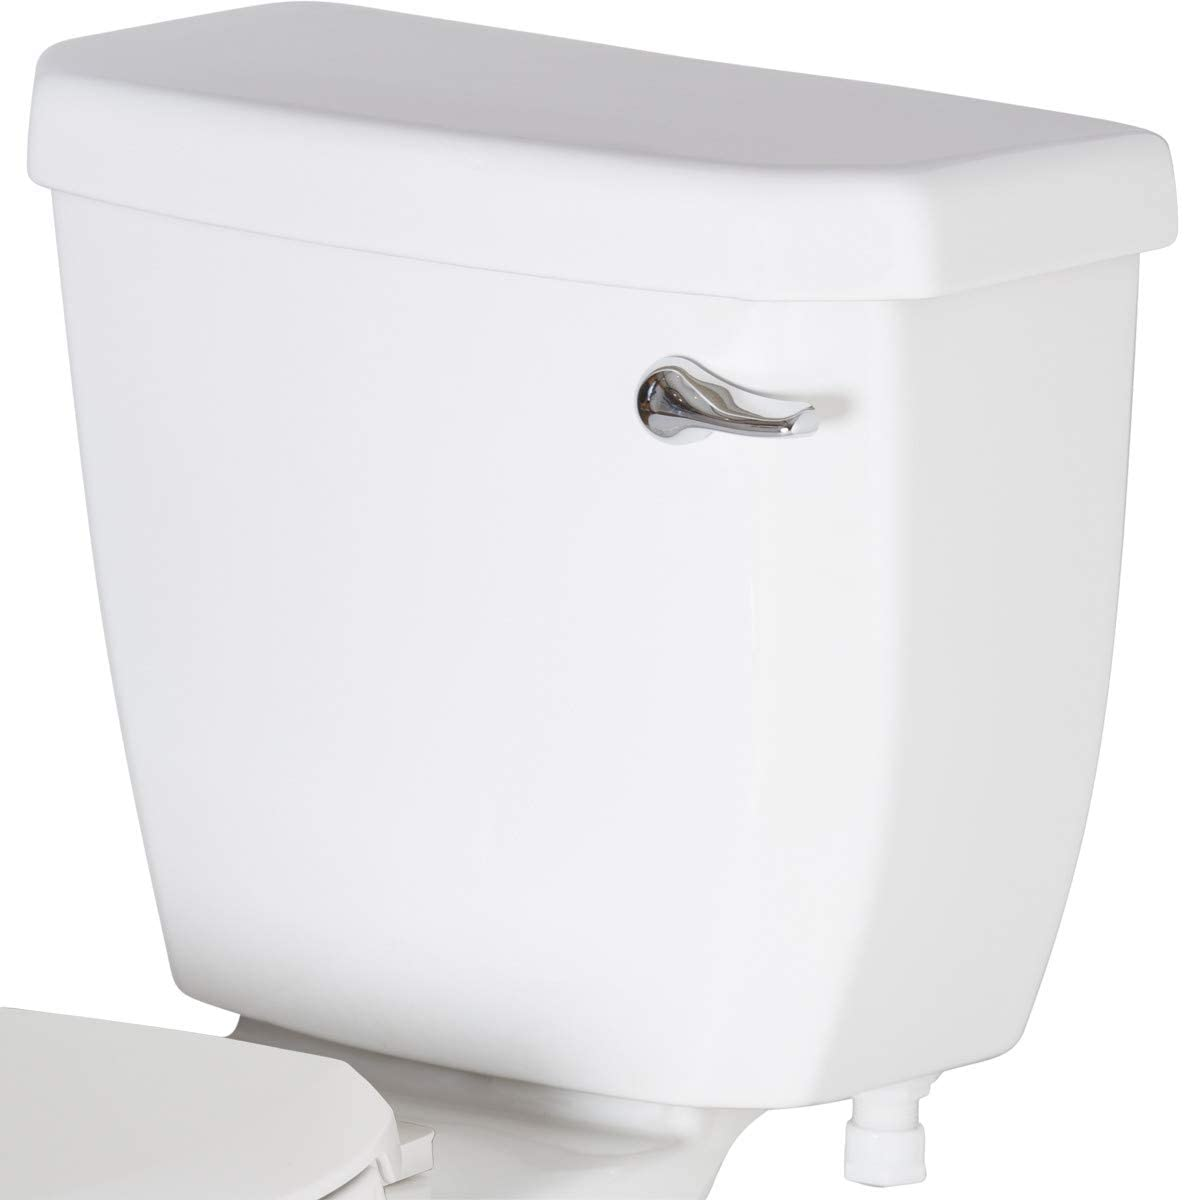 PROFLO PF6112RWH PROFLO PF6112R 1500 1.28 GPF Toilet Tank Only with 12